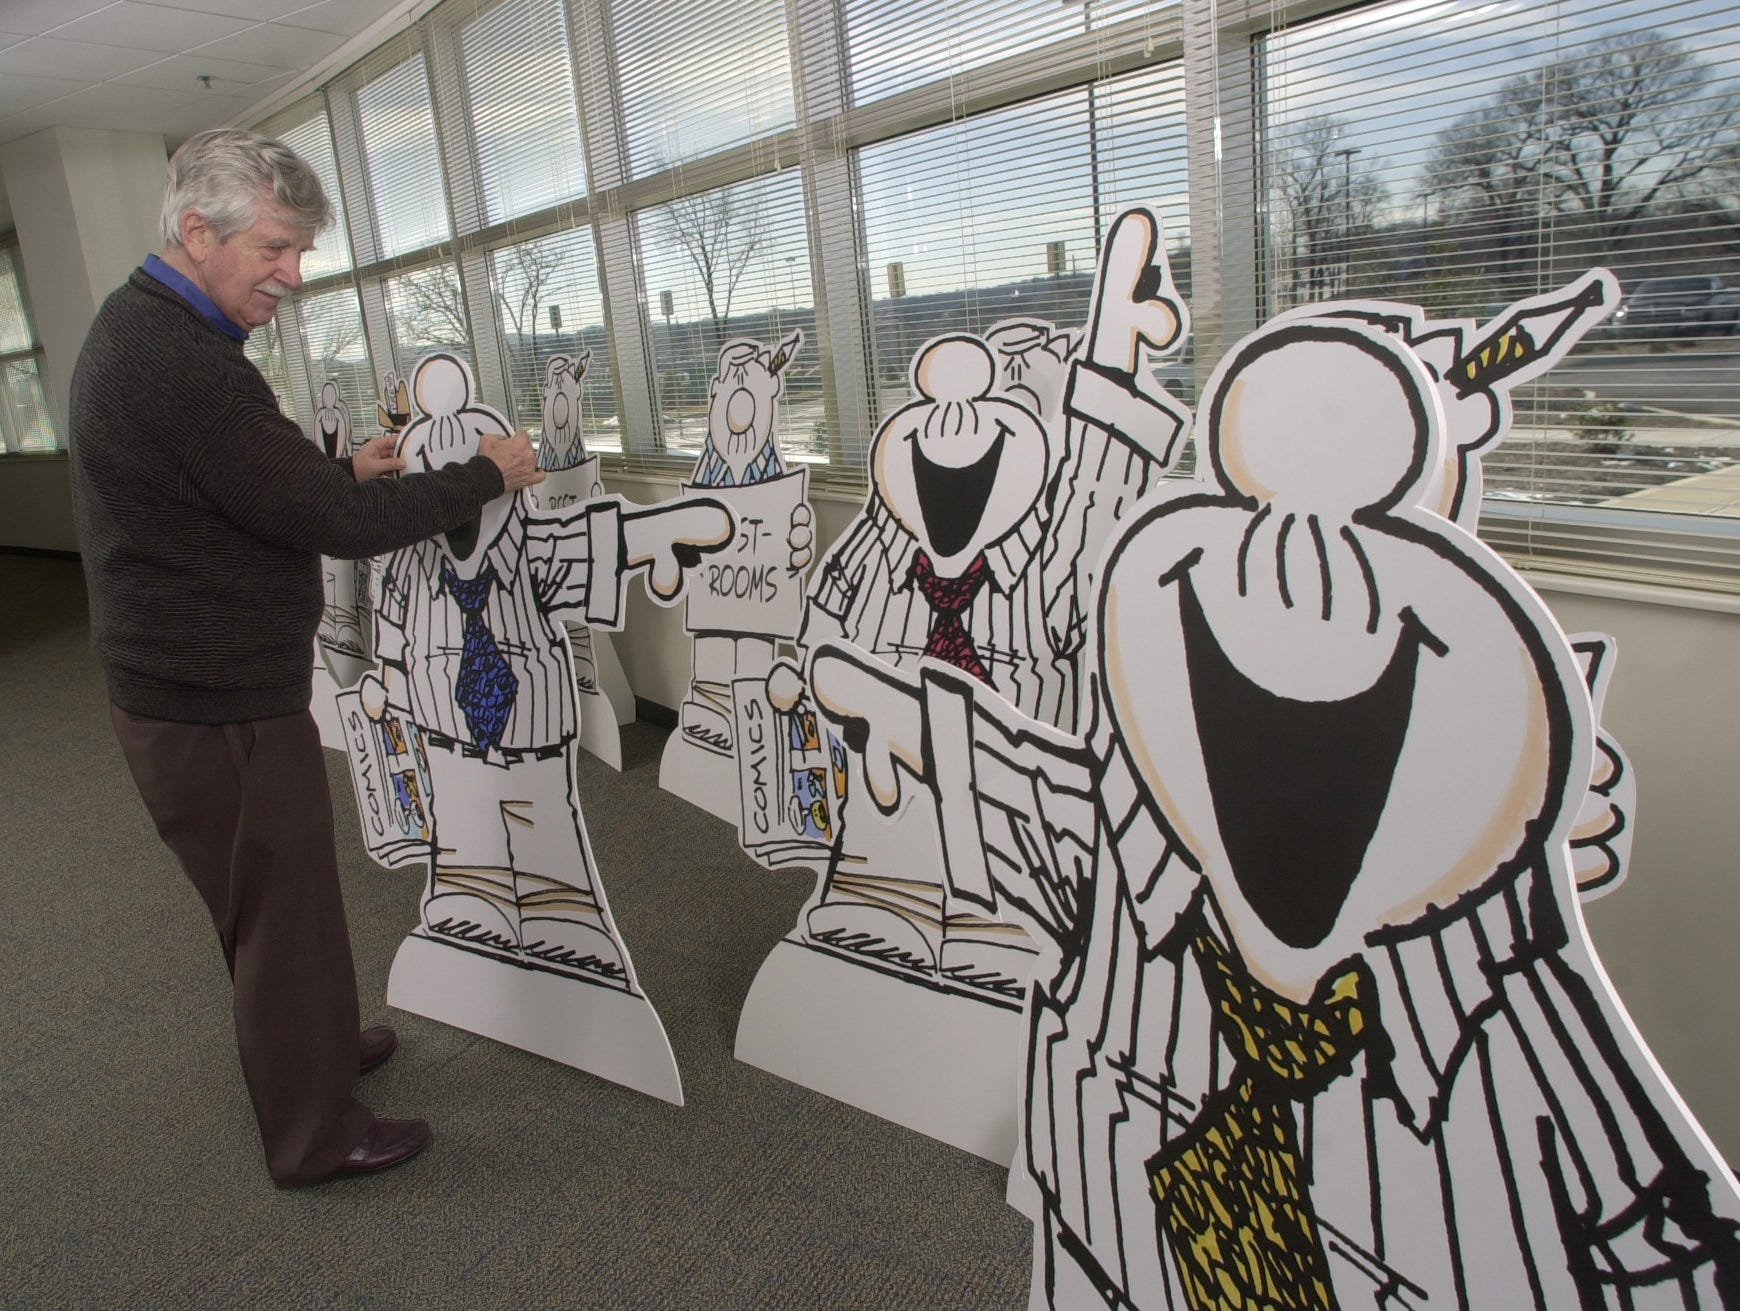 Editorial cartoonist Charlie Daniel checks some of the 33 stand-ups of his alter ego, Smidlap, that will be deployed during an corporate open house Monday at the Knoxville News-Sentinel. Over 100 of Daniel's cartoons and illustrations will be exhibited from Jan. 30 to March 19 at East Tennessee University's Carroll Reece Museum in Johnson City.